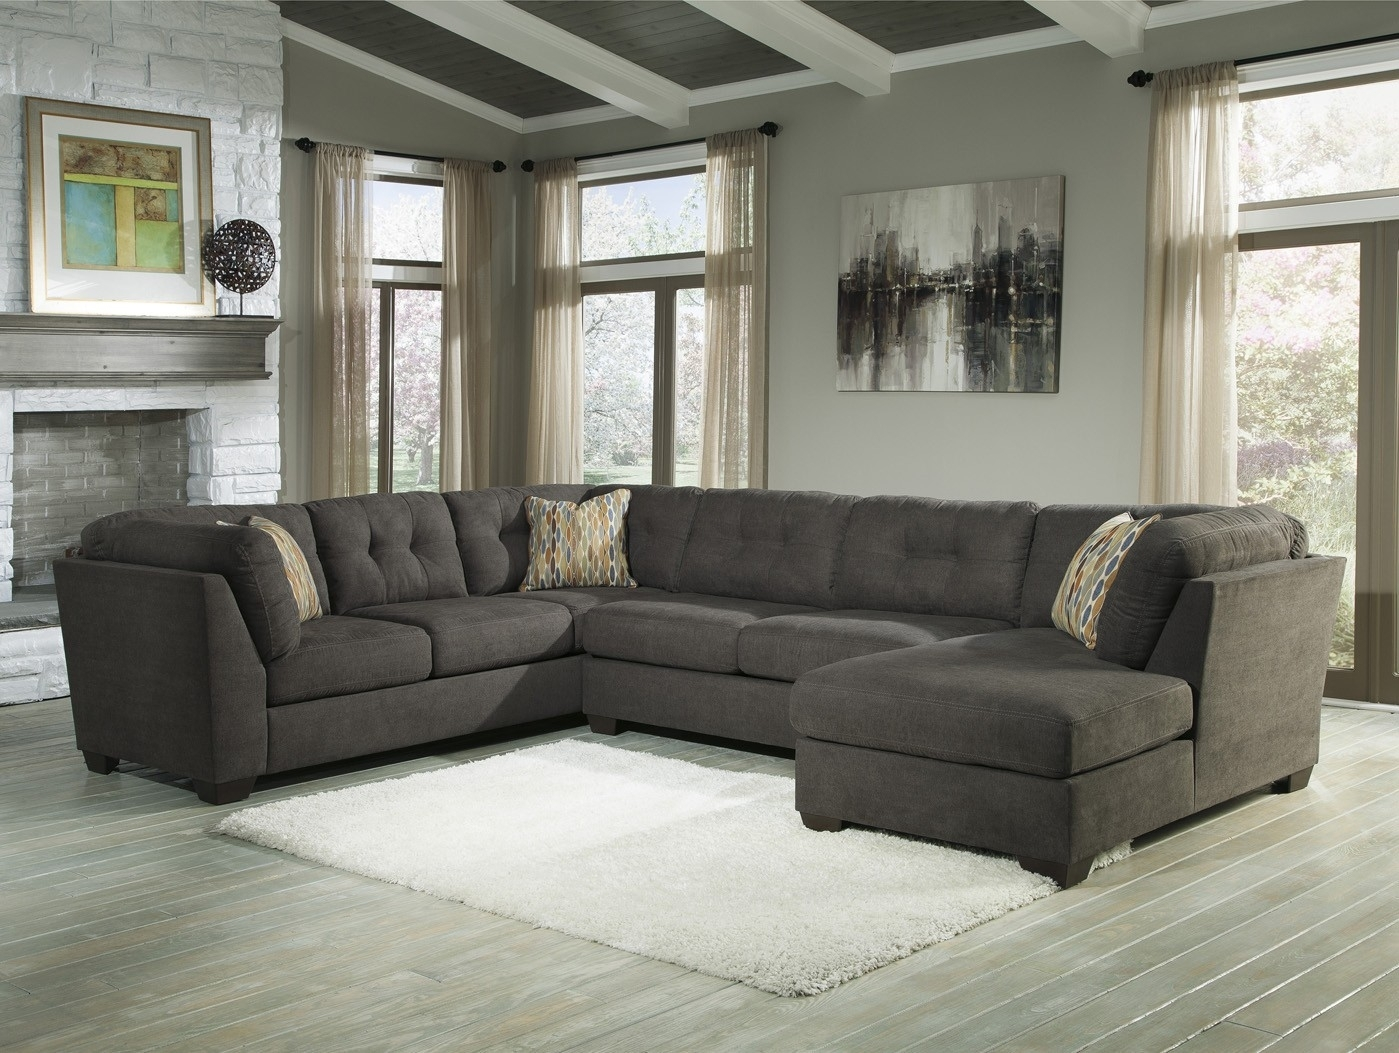 Delta City Steel 3 Piece Sectional Sofa With Right Arm Facing Chaise With Regard To Elk Grove Ca Sectional Sofas (View 7 of 10)